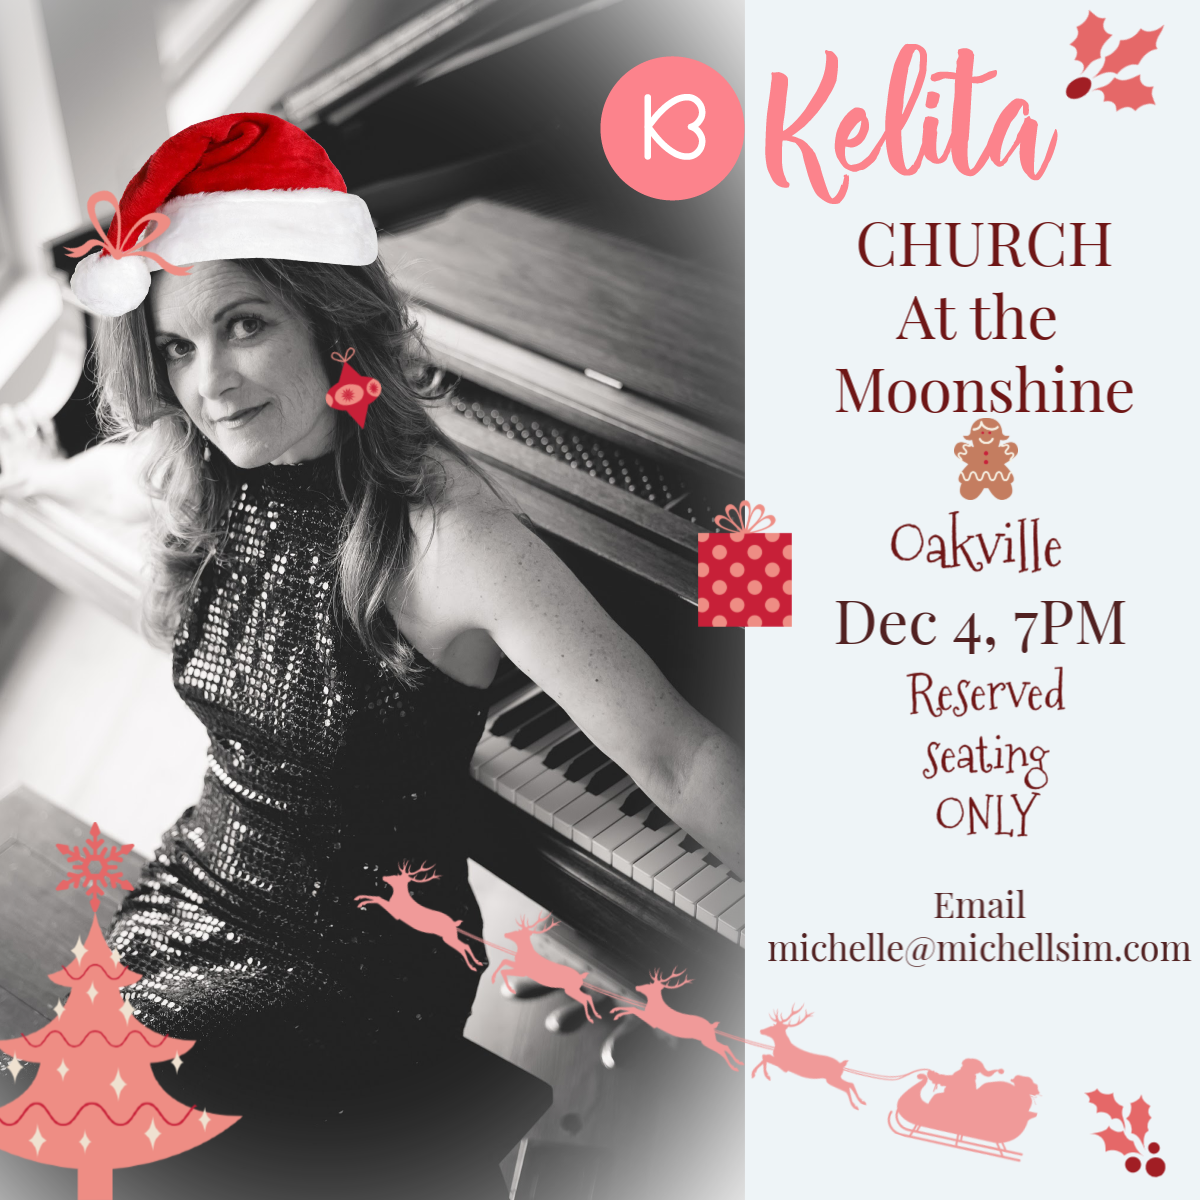 Promo poster for Kelita at Moonshine Cafe